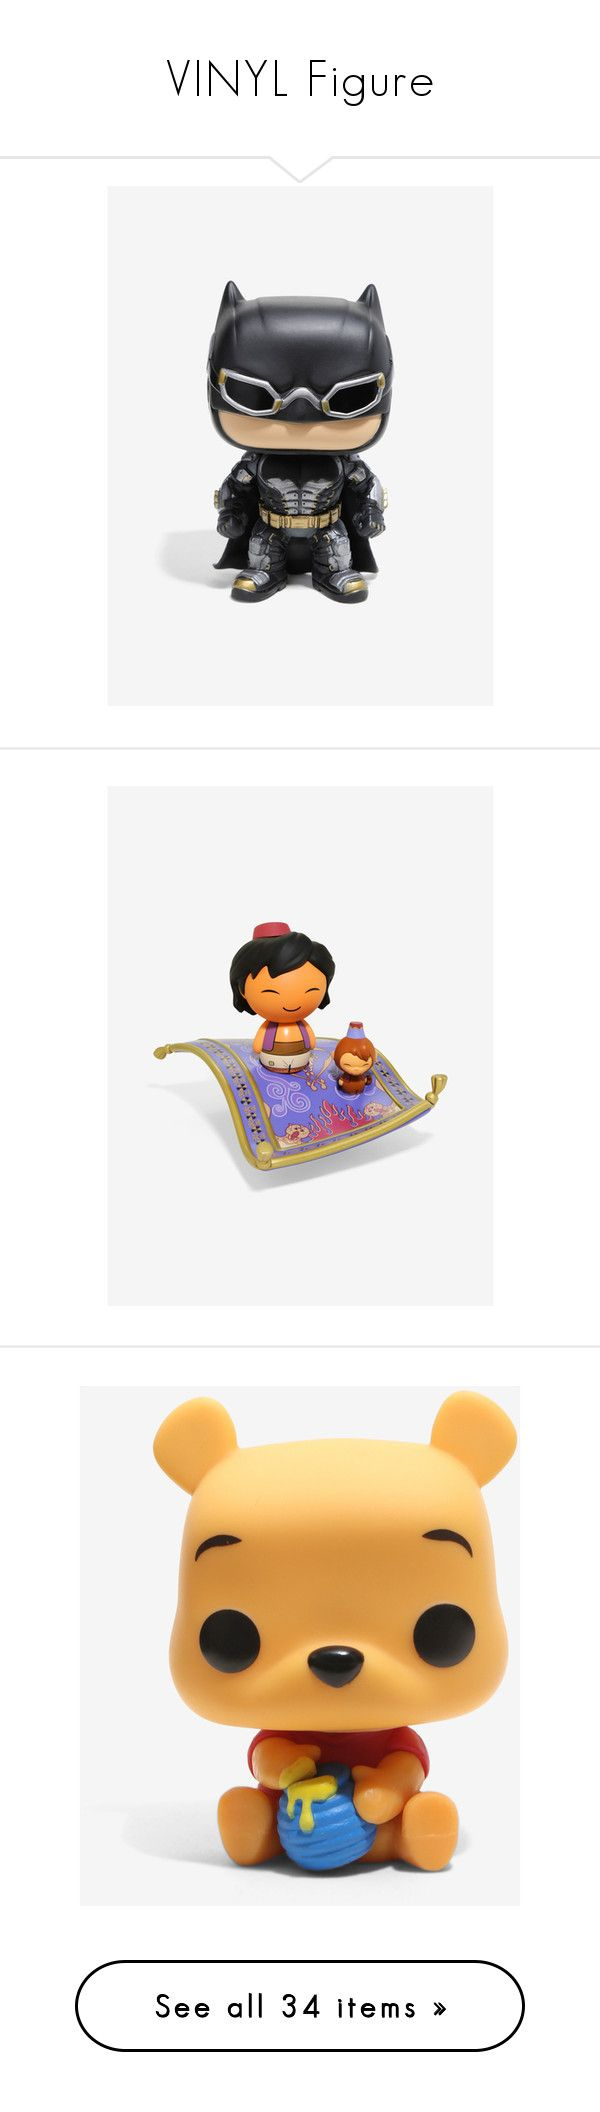 """""""VINYL Figure"""" by majastina2004 ❤ liked on Polyvore featuring home, home decor, vinyl figure, funko, justice league figurines, batman figure, batman figurine, vinyl home decor, disney home decor and disney figurines"""